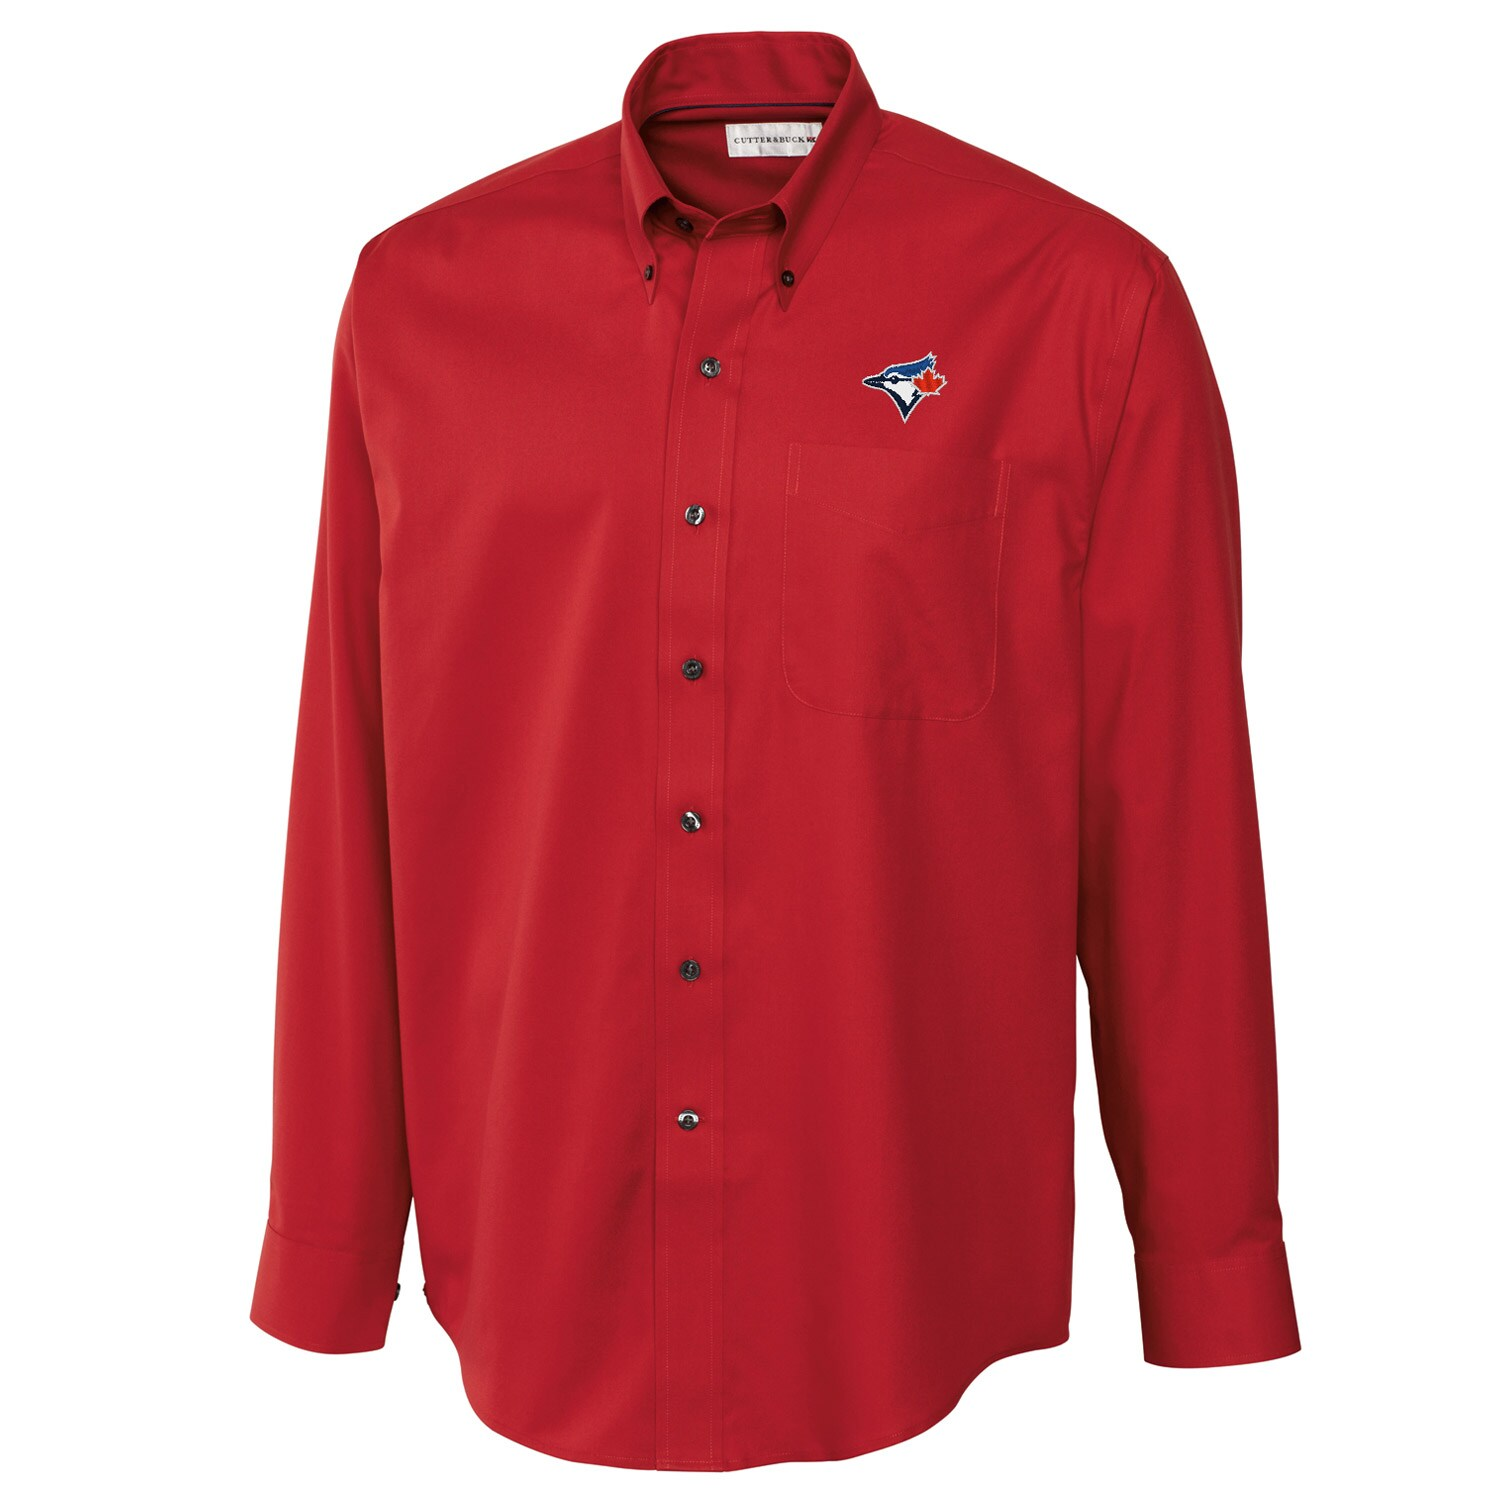 Toronto Blue Jays Cutter & Buck Big & Tall Epic Easy Care Fine Twill Long Sleeve Shirt - Red